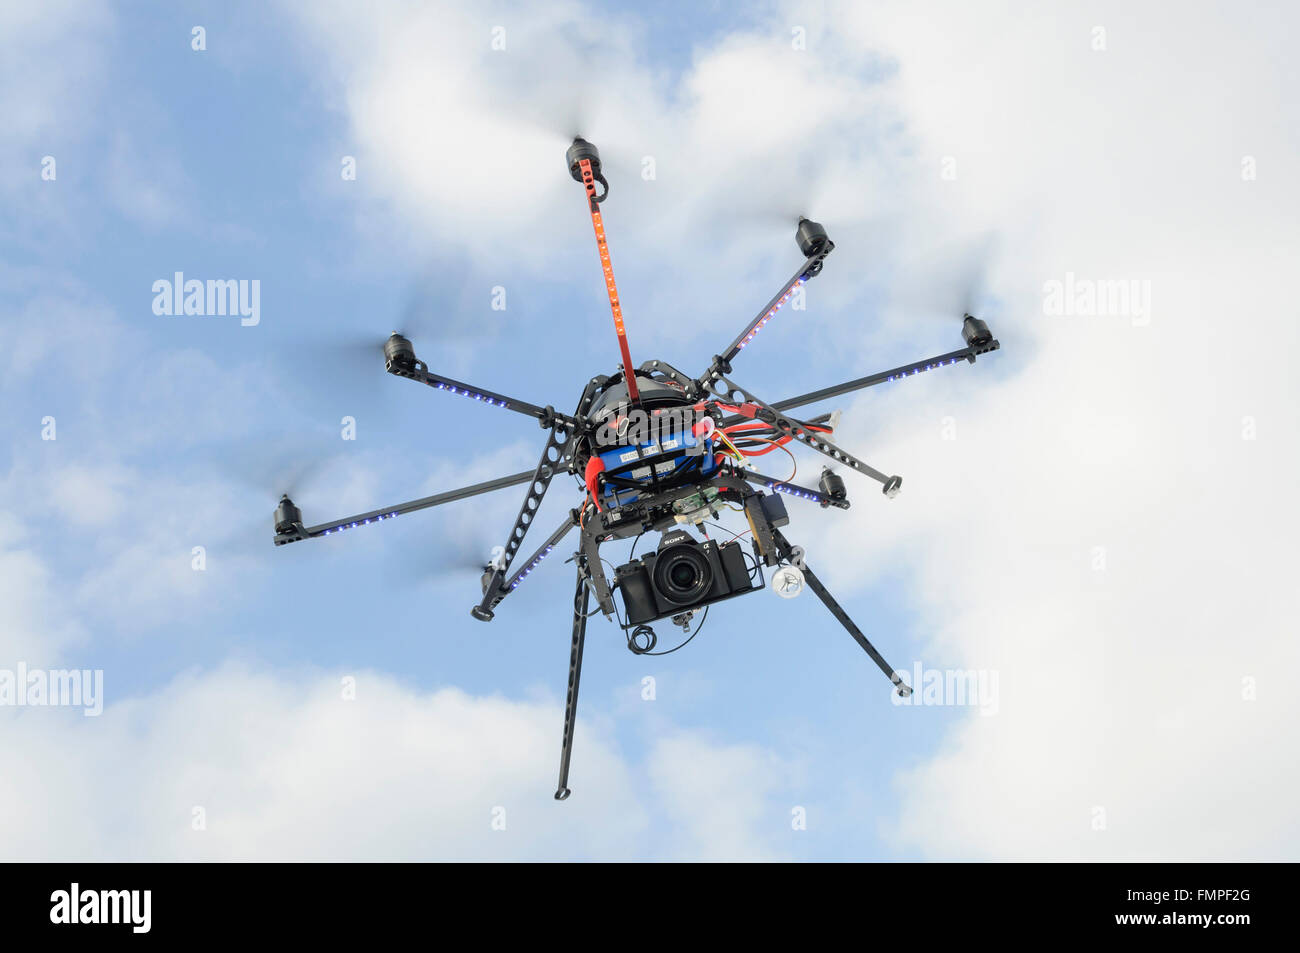 Oktocopter, drone, multicopter, flying with camera, North Rhine-Westphalia, Germany - Stock Image